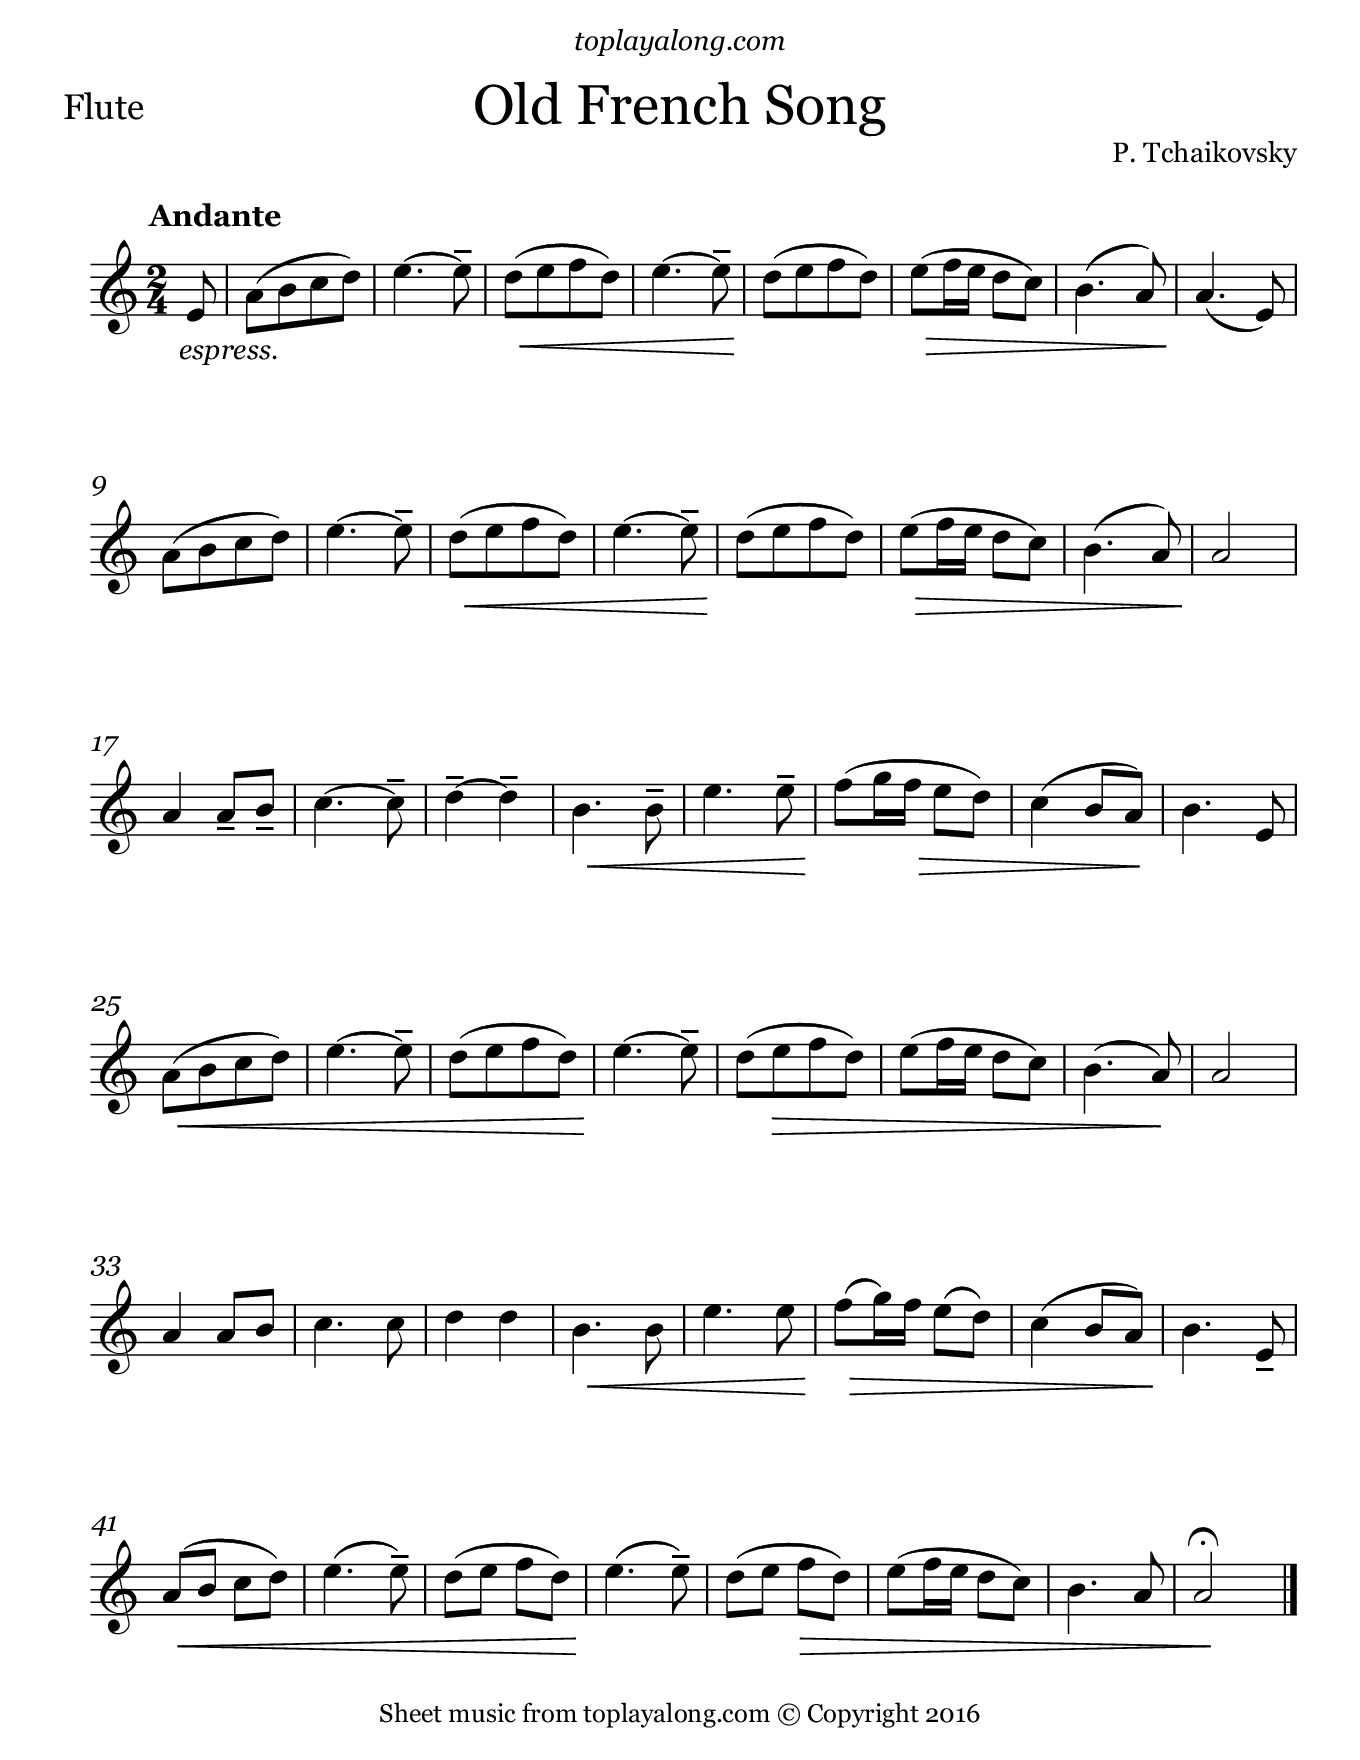 Old French Song by Tchaikovsky. Sheet music for Flute, page 1.